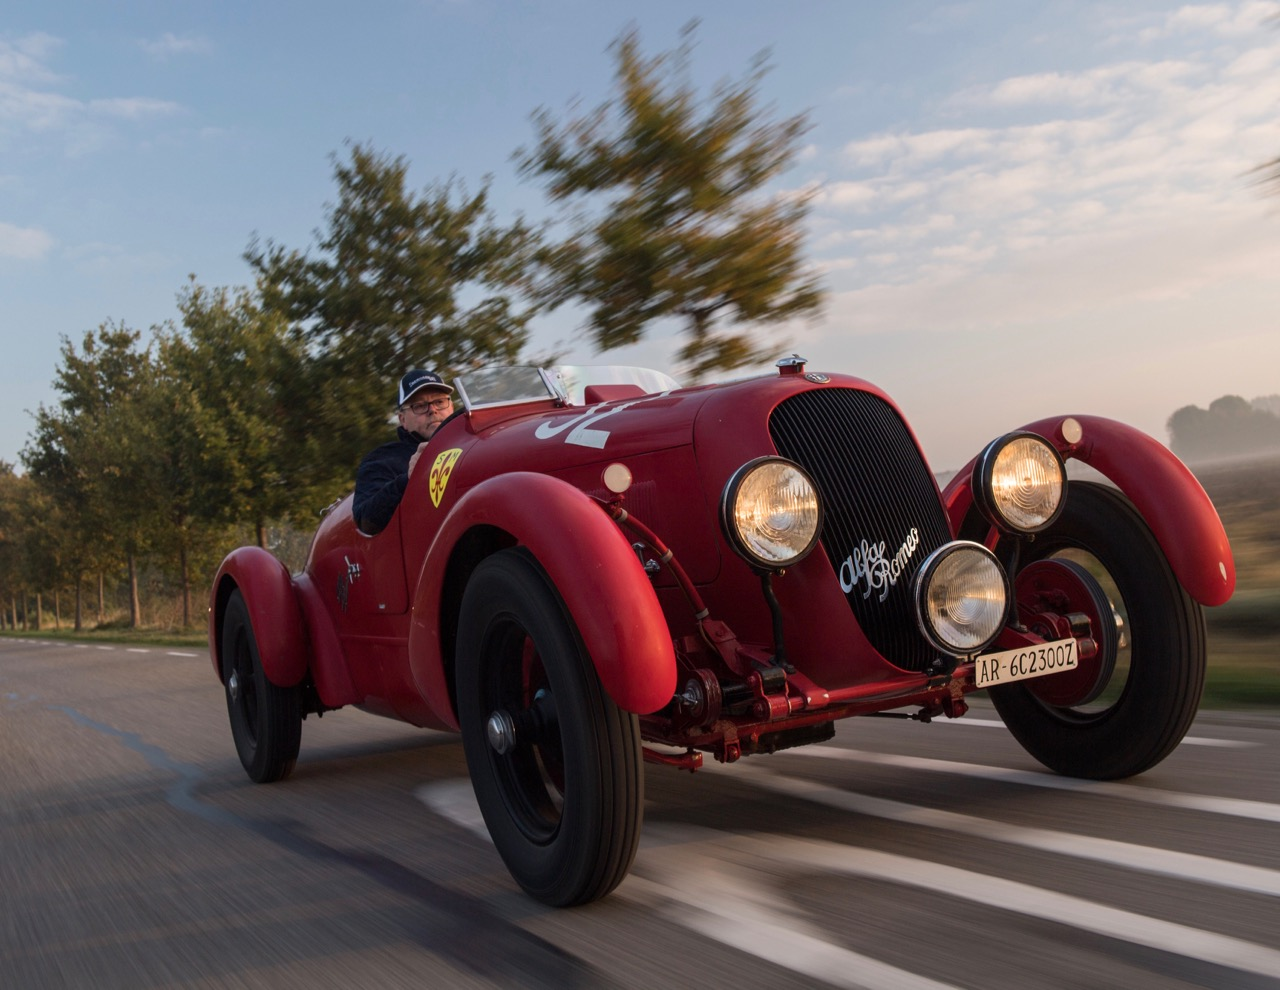 1934 Alfa Romeo 6C 2300 Pescara spider at speed